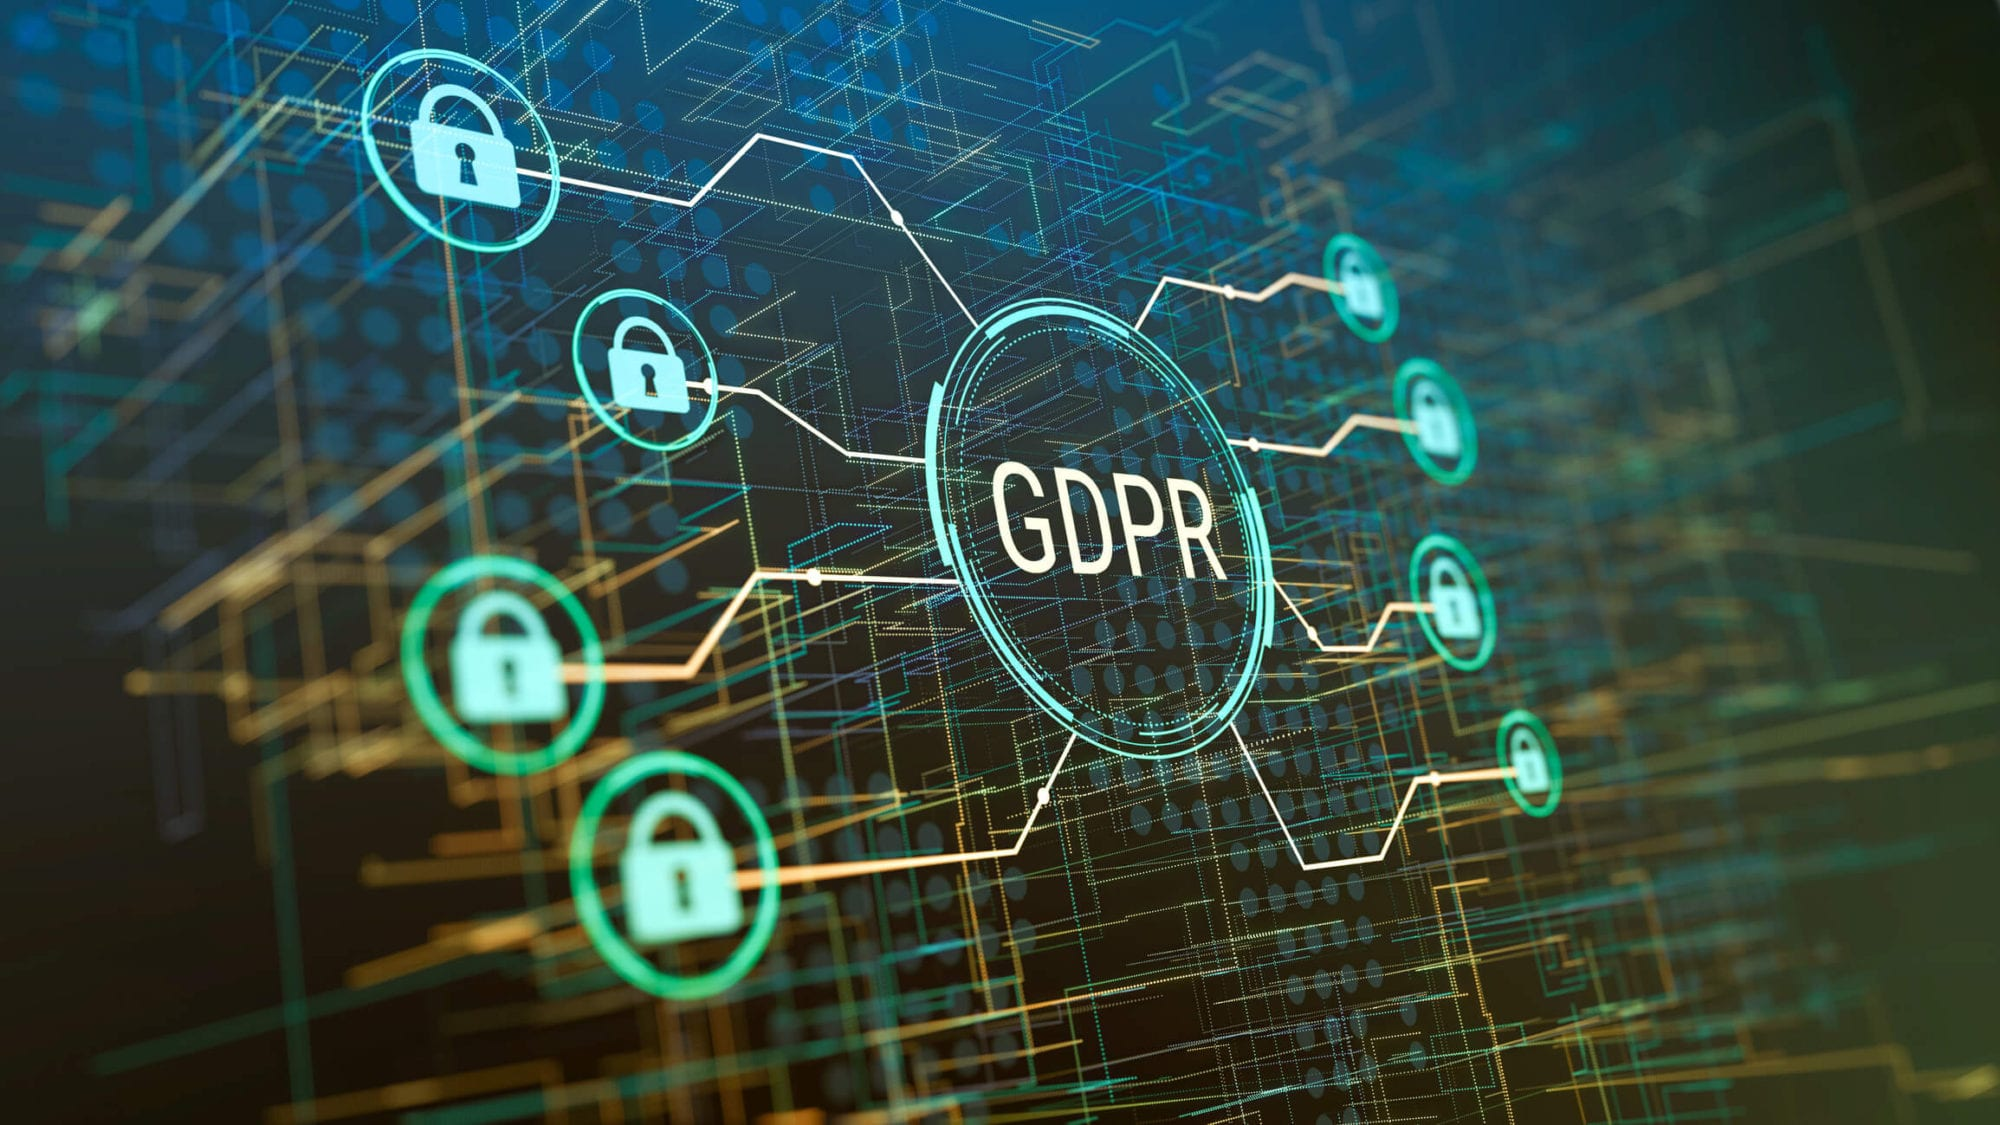 GDPR: What does it really mean for your organisation?